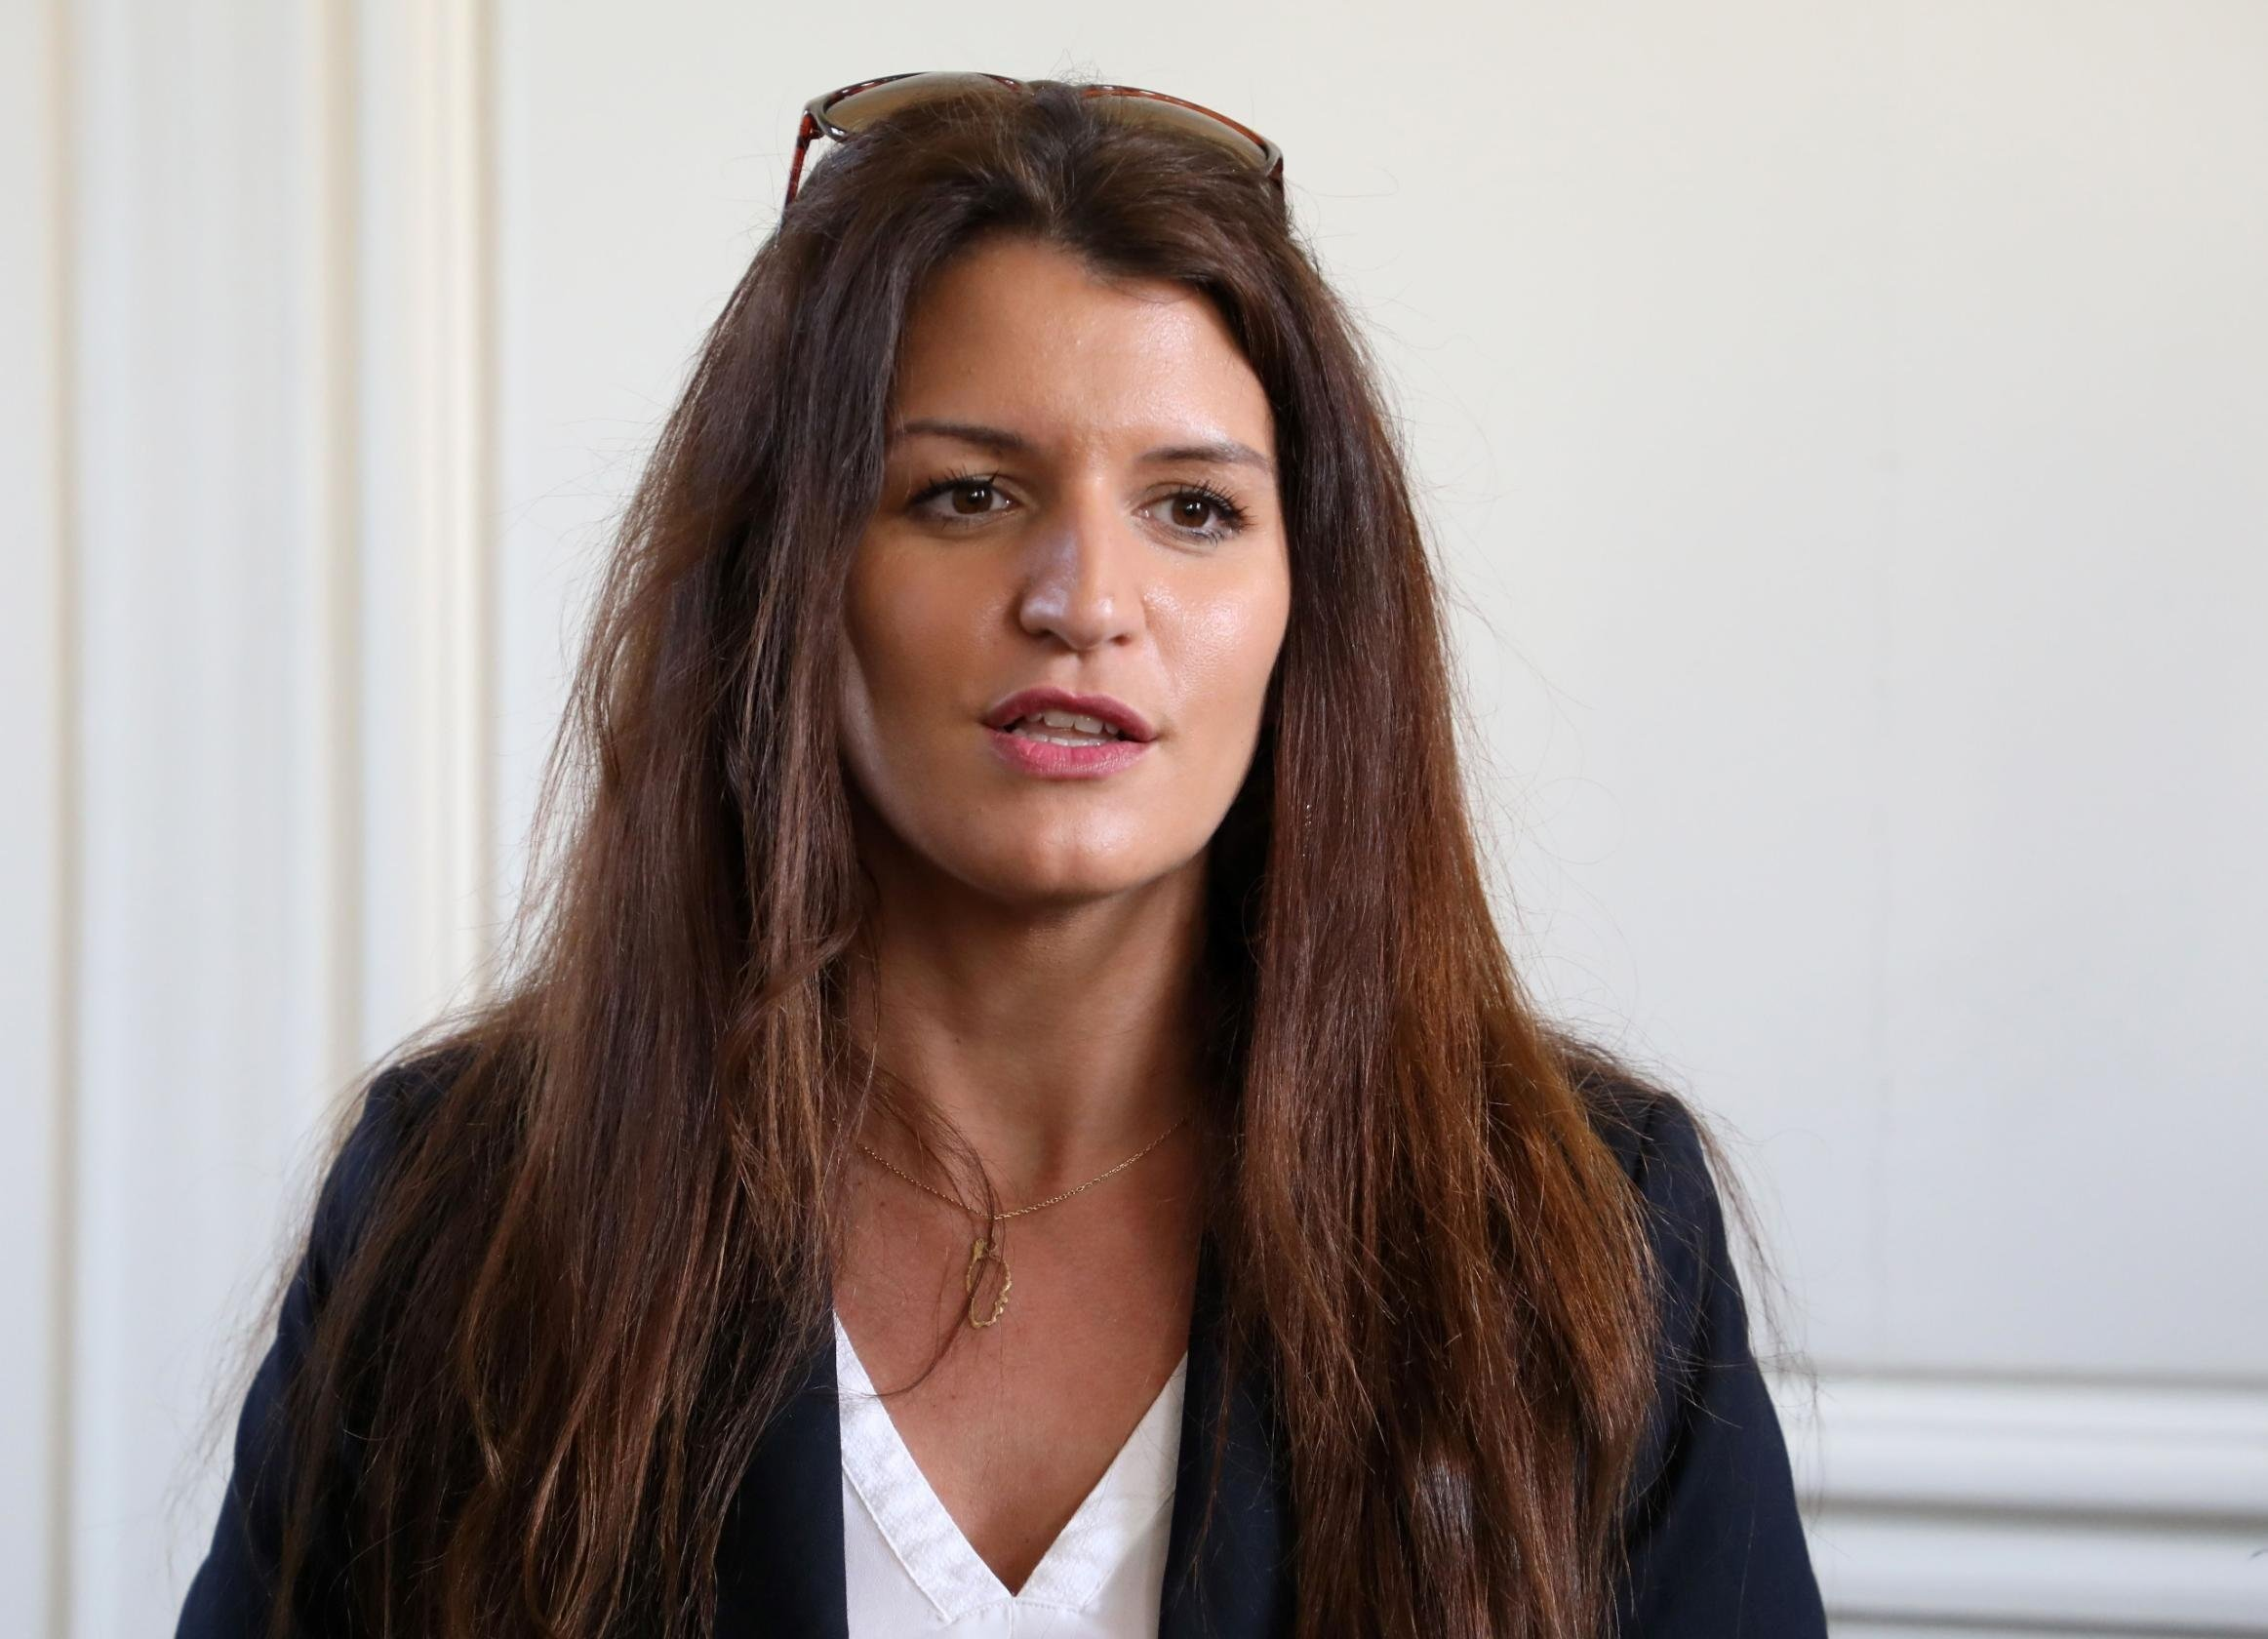 France's government has proposed setting a formal age of sexual consent after two-high profile cases involving 11-year-old girls, according to the country's Equality Minister Marlene Schiappa.